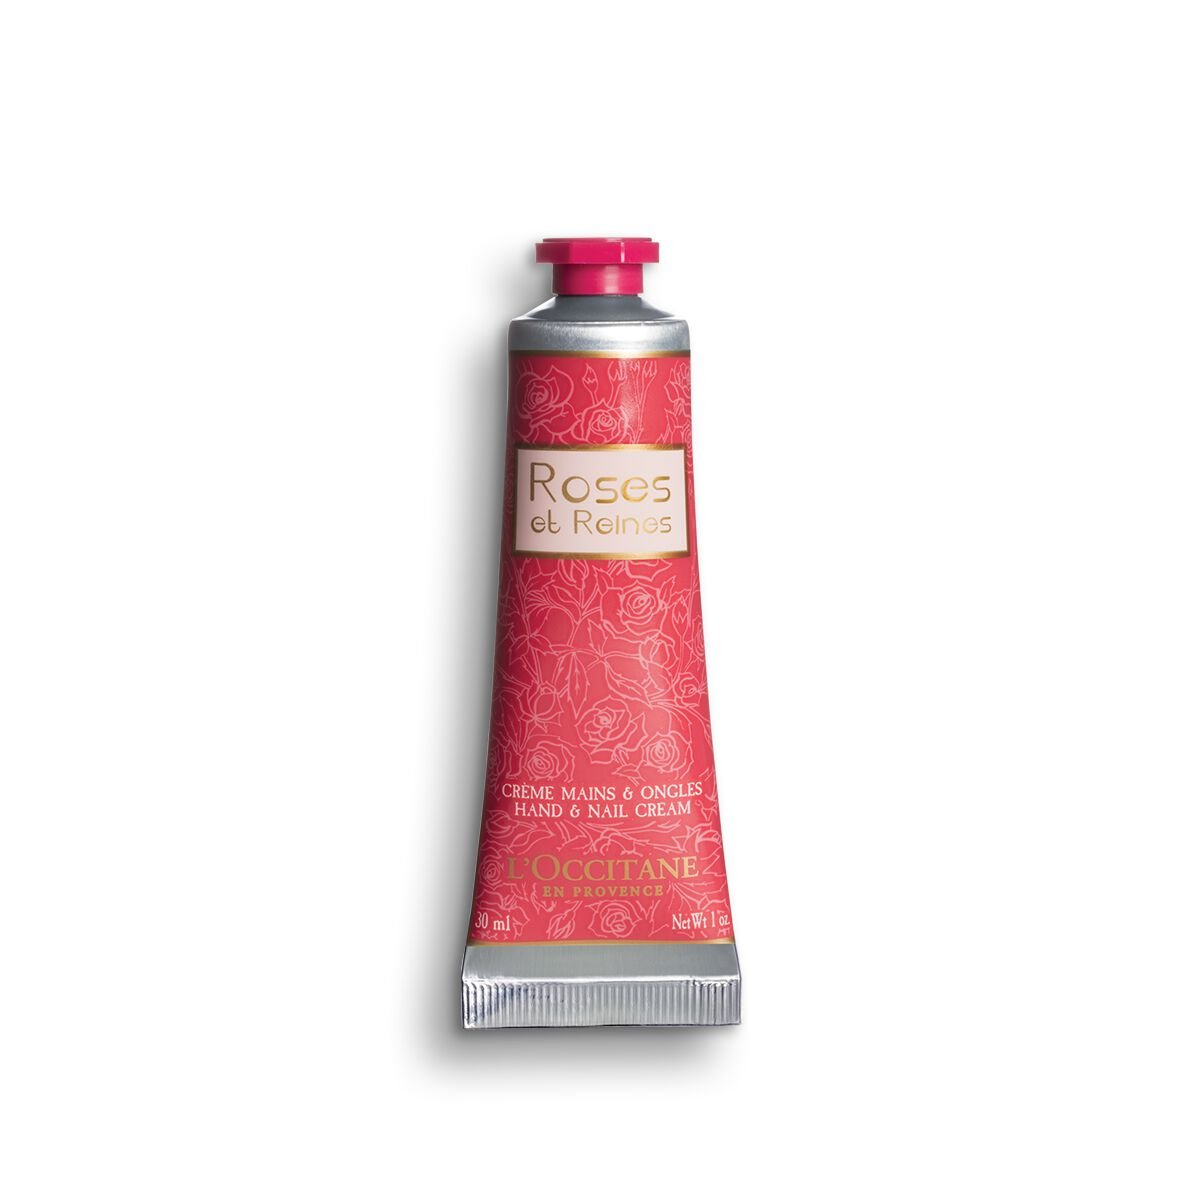 Roses et Reines Hand Nail Cream 1 oz. from L'OCCITANE